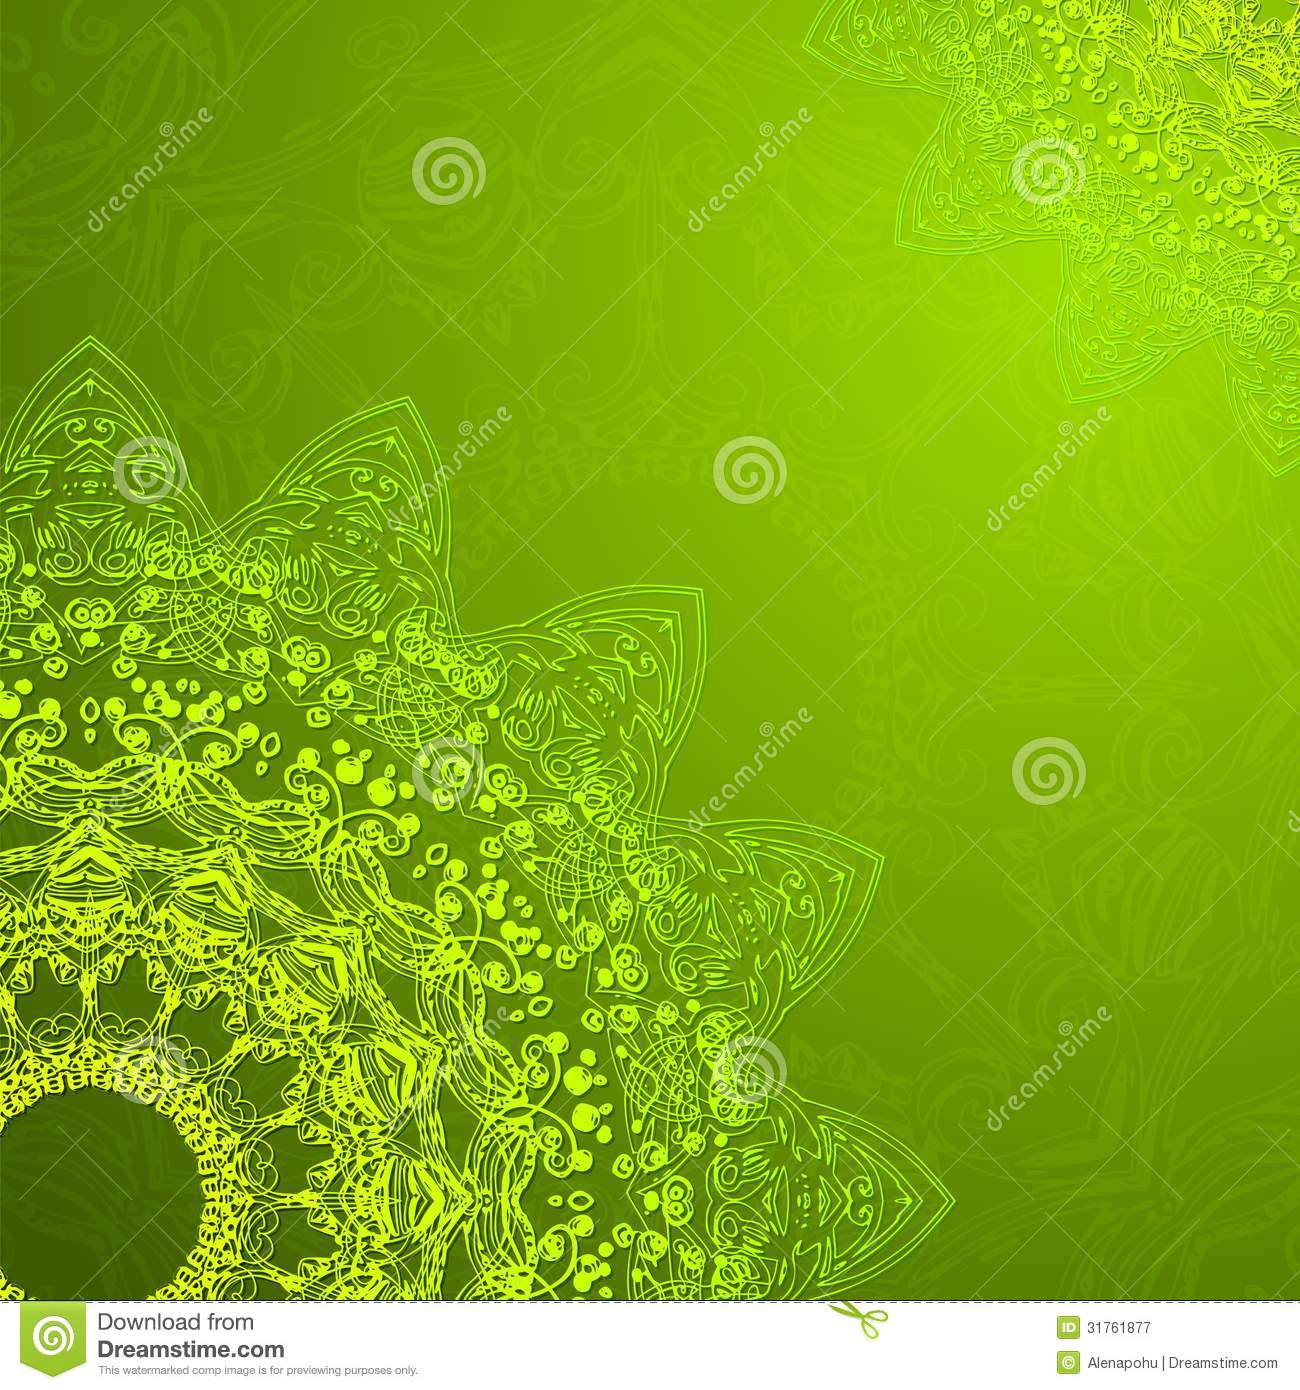 Vintage Ethnic Vector Ornament Mandala Background Royalty Free Stock ... Green Texture Repeating Background